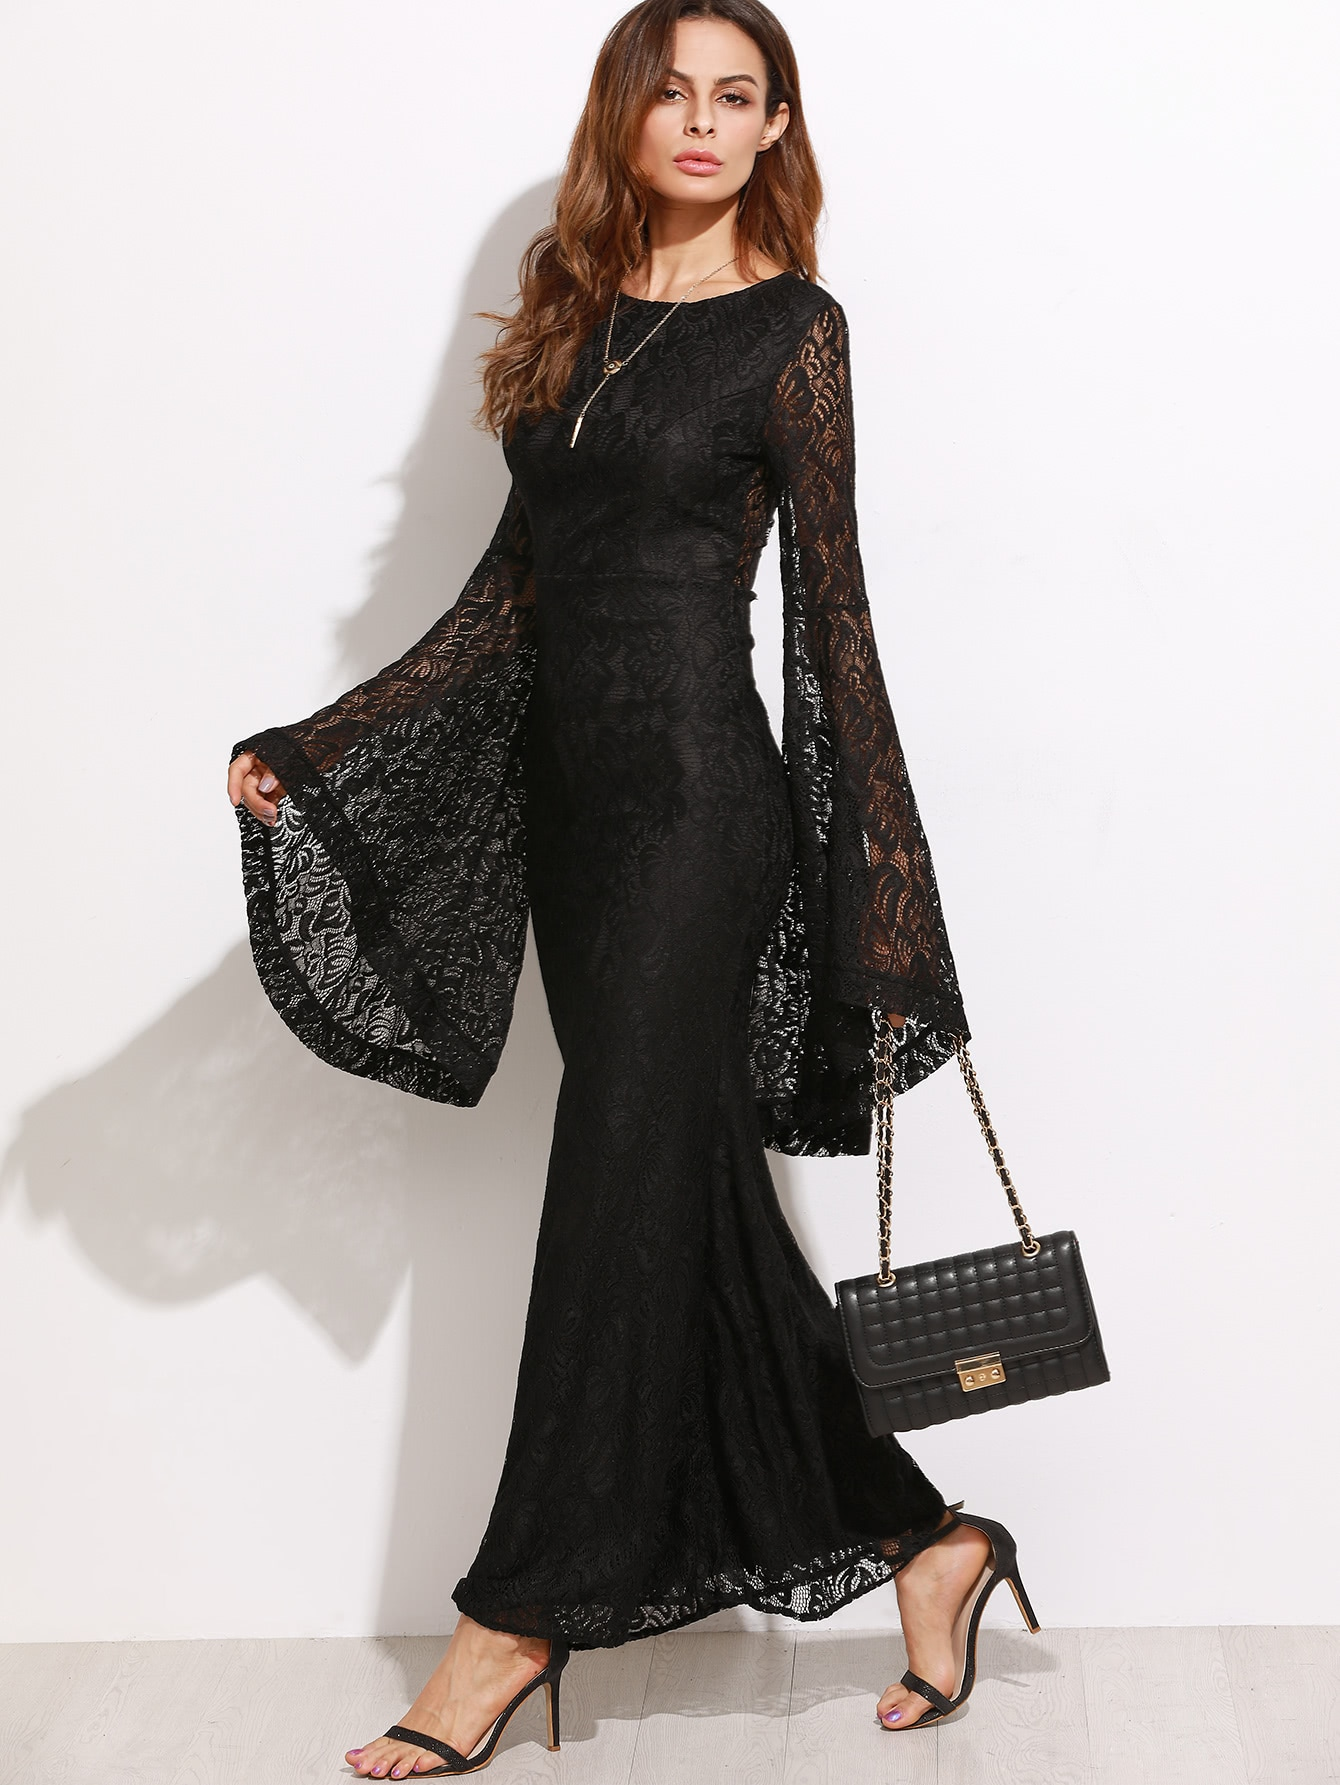 Oversized Bell Sleeve Floral Lace Dress Shein Sheinside